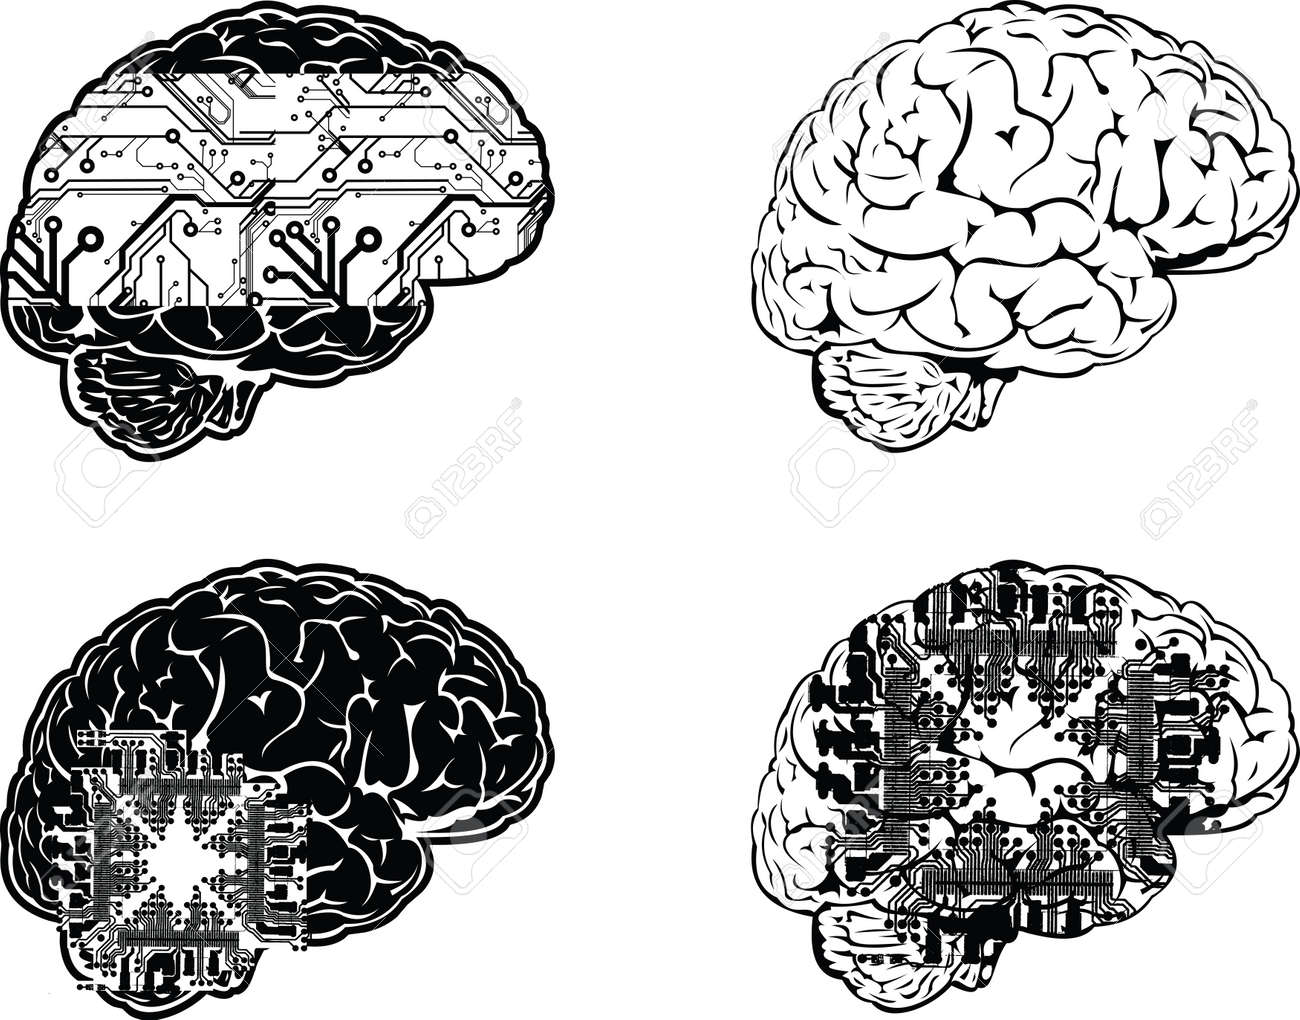 Set Of Four One Color Electronic Brain Side View. Stock Vector - 13635209